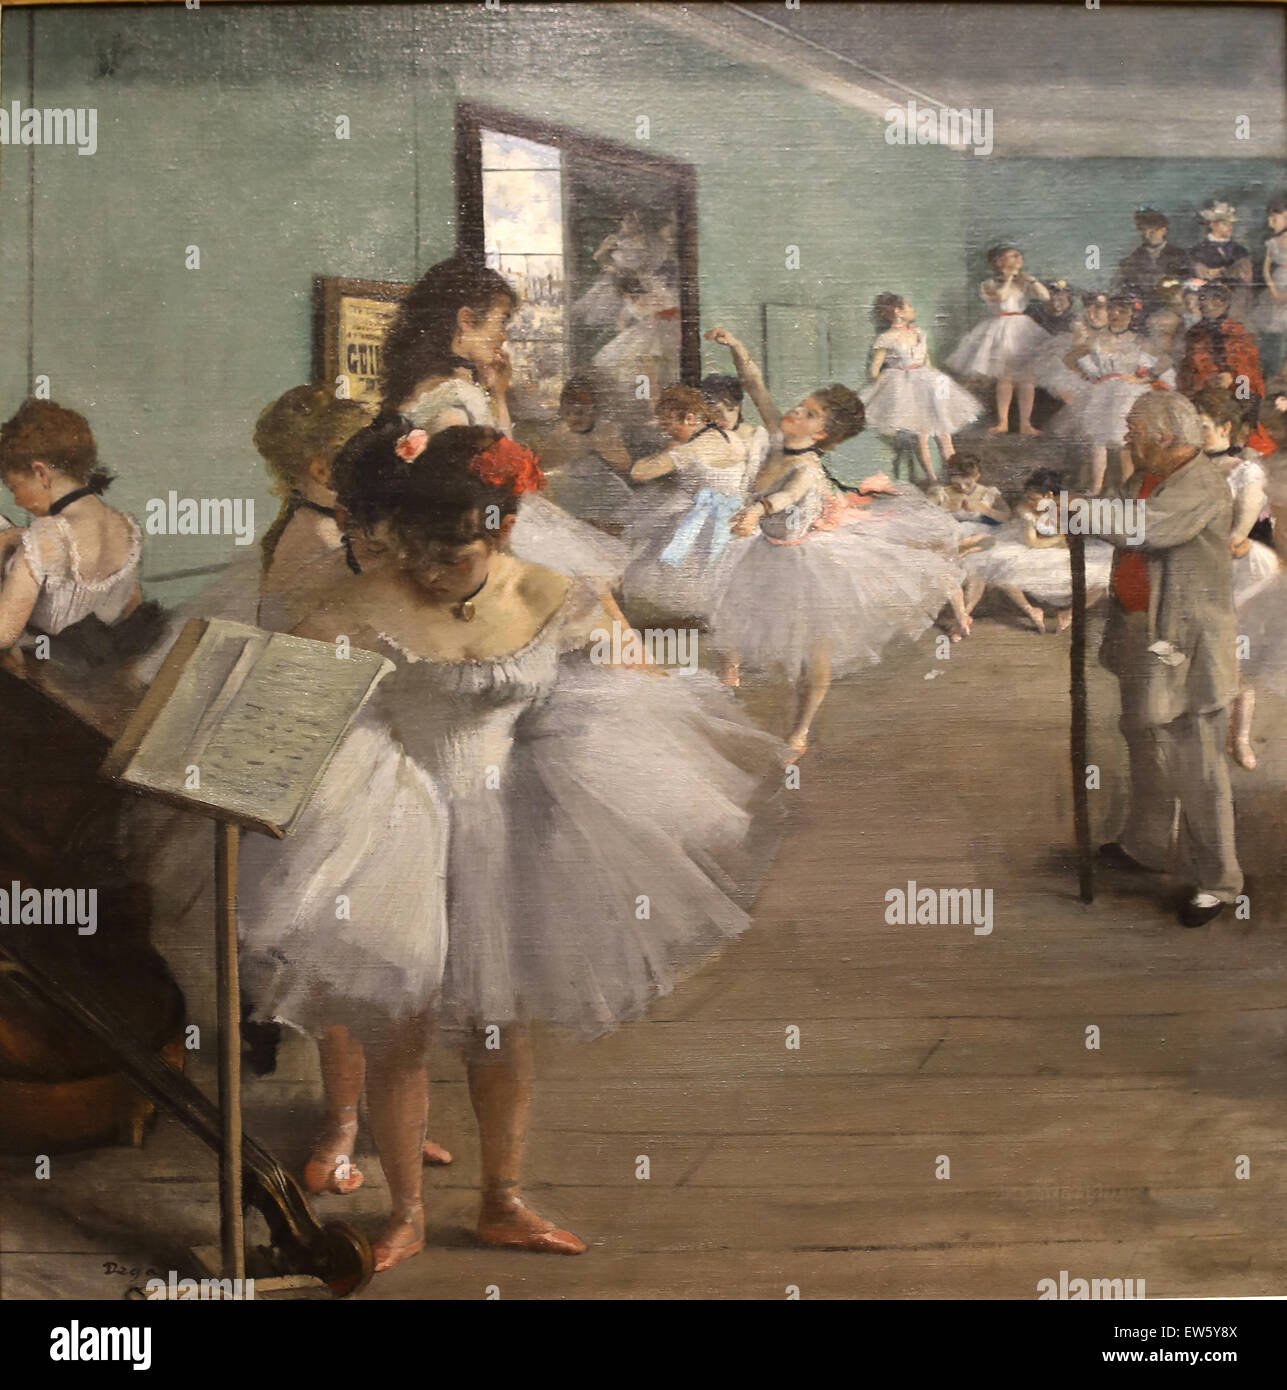 Edgar Degas (1834-1917). French painter. The Dance Class, 1874. Oil on canvas. Metropolitan Museum of Art. Ny. USA. - Stock Image